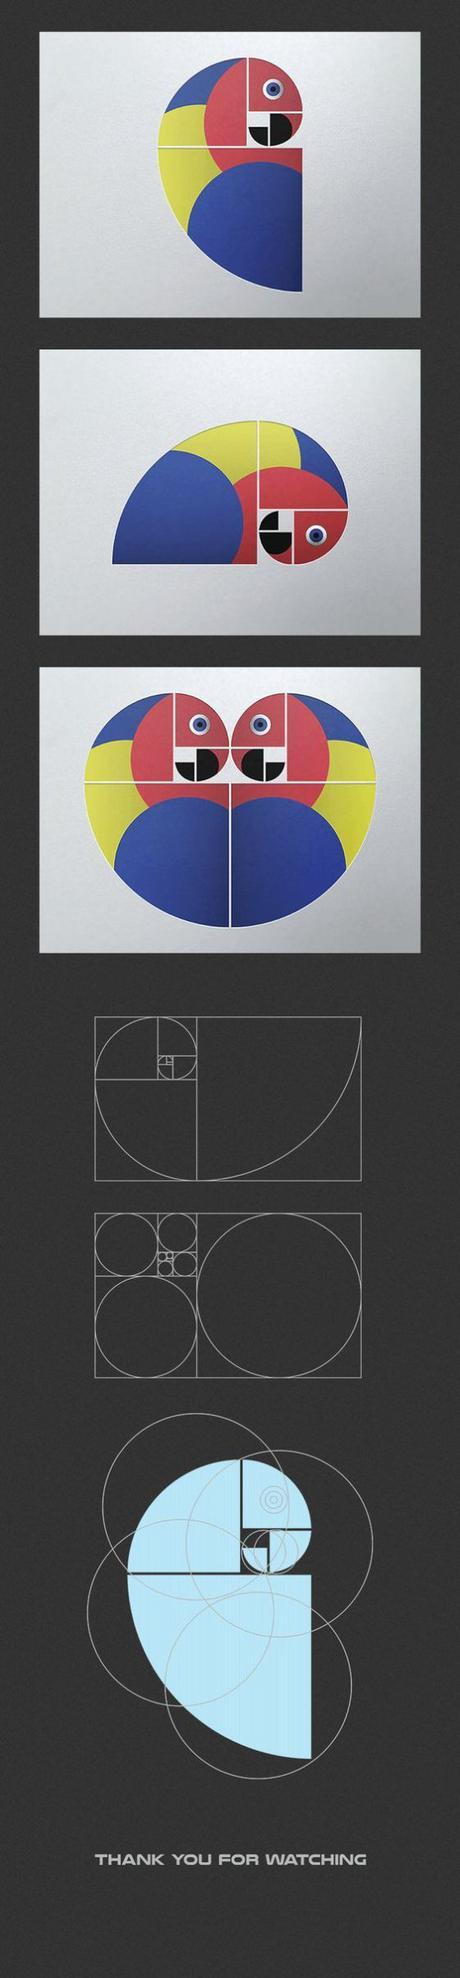 Hunting for the Golden Ratio